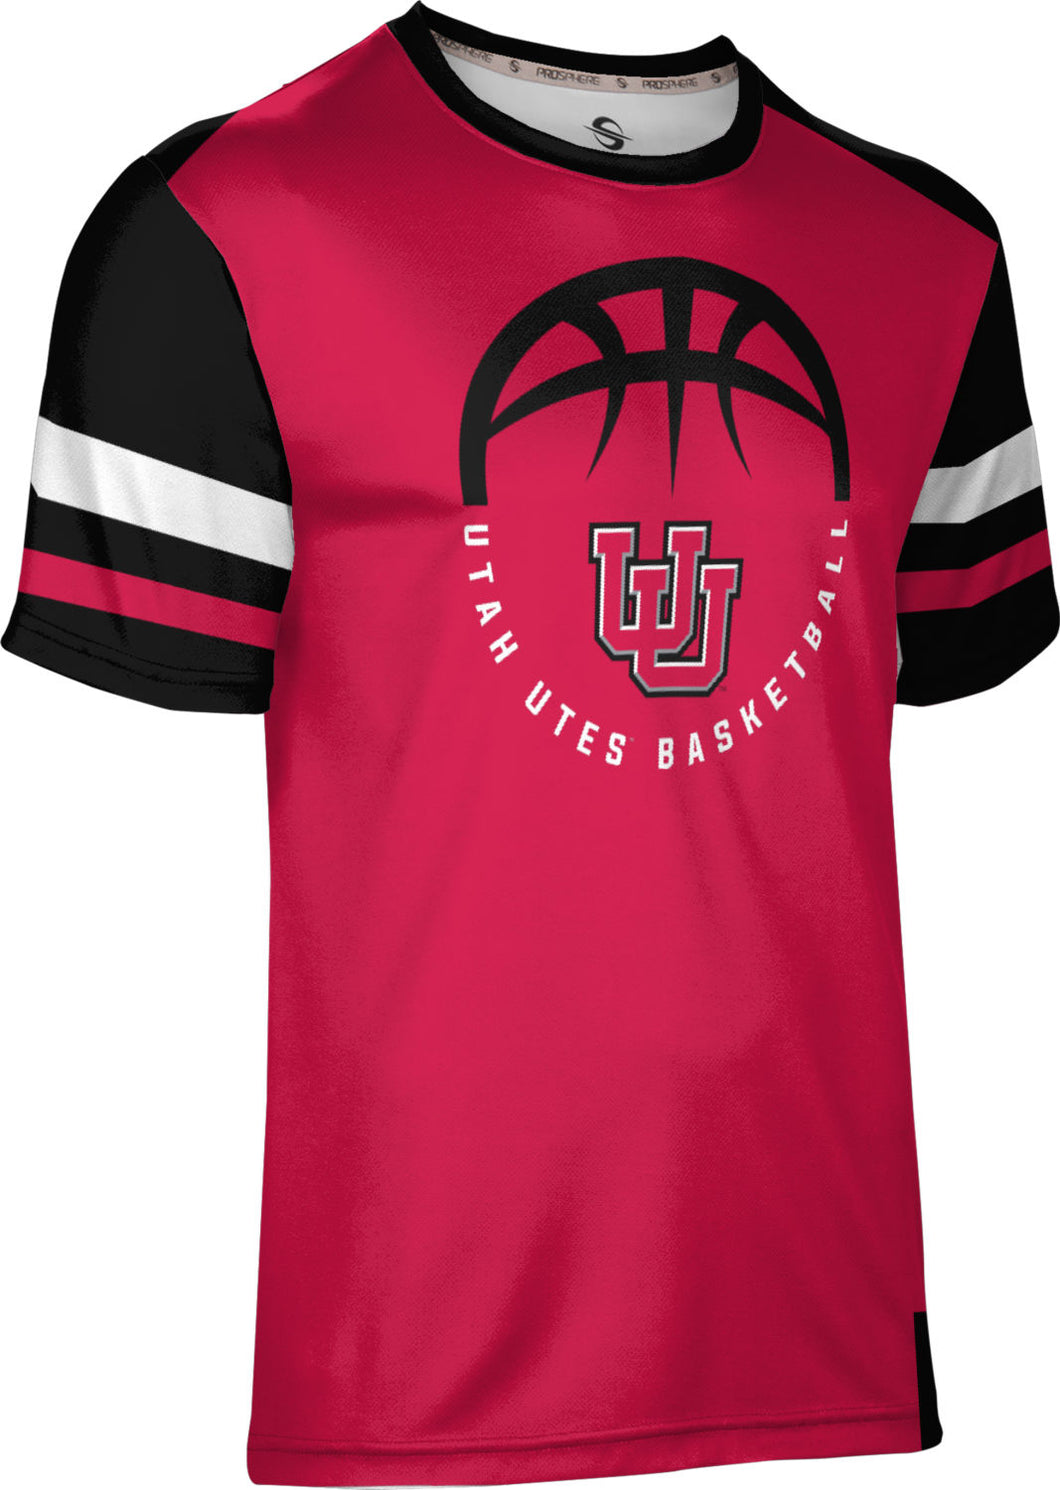 University of Utah Men's Basketball T-shirt - Old School